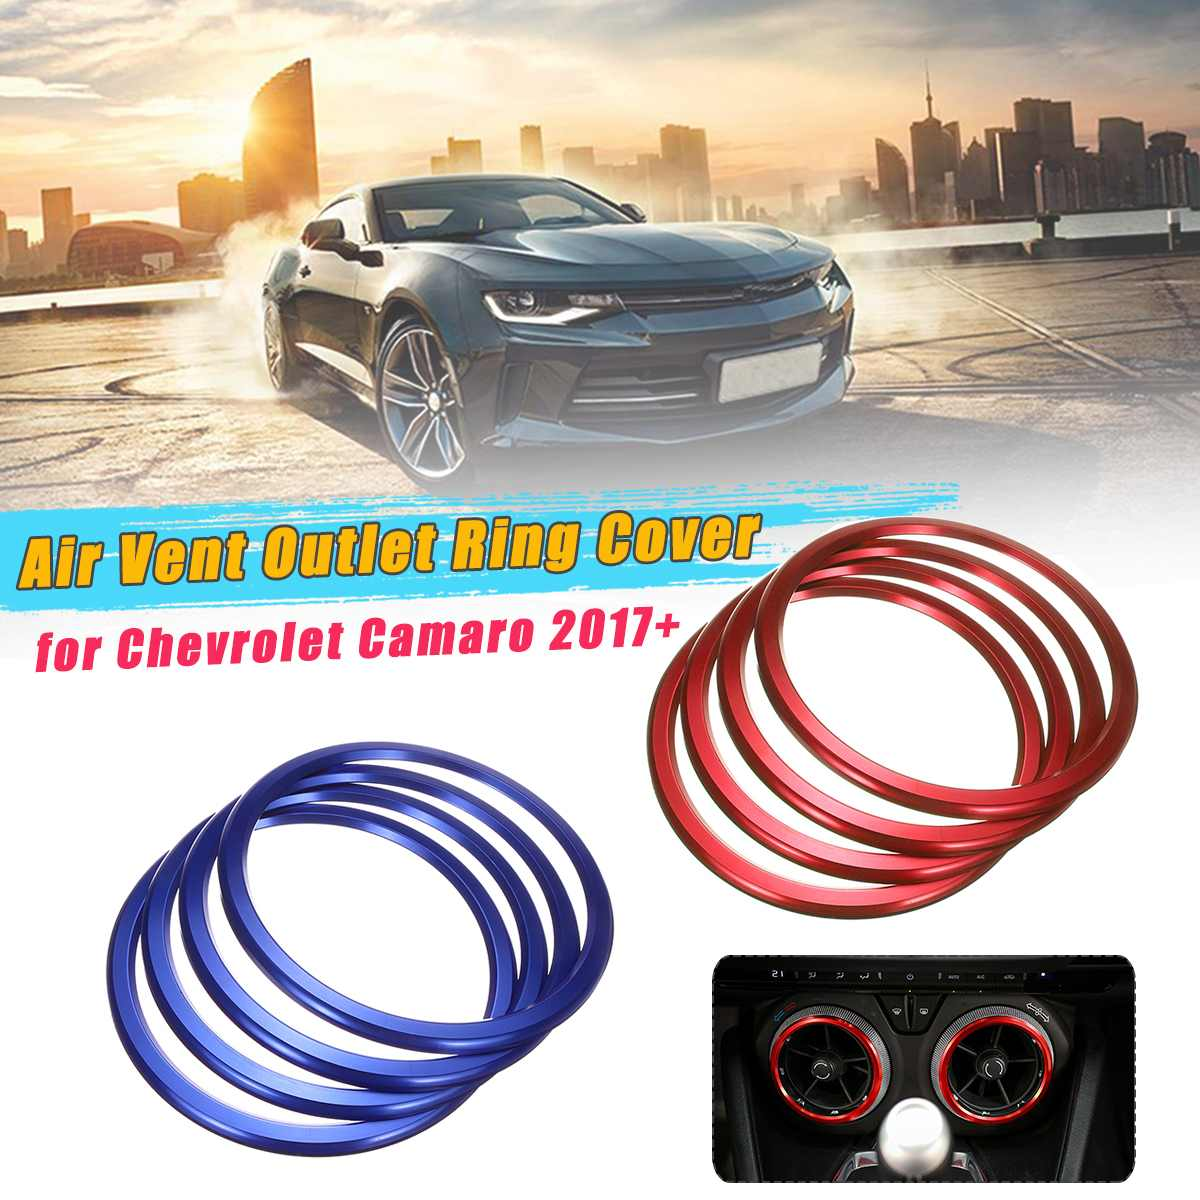 For Chevrolet Camaro 2017 + Aluminum Alloy Air Condition Air Vent Outlet Ring Cover Trim Decoration Car Styling Accessories